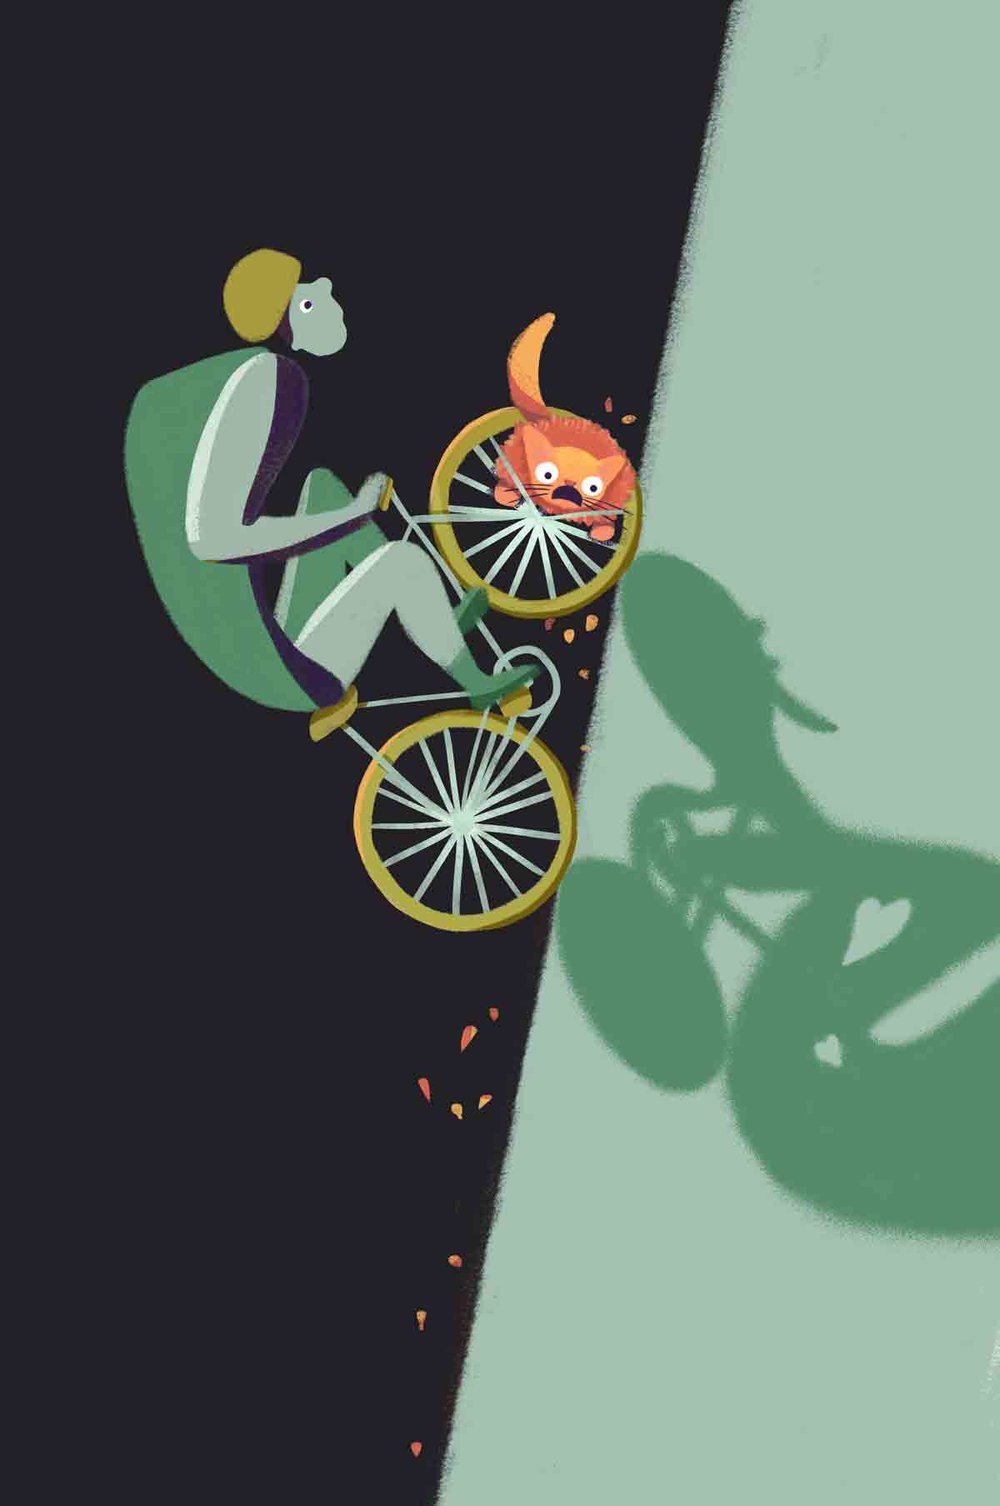 The final illustration I made, incorporating a whimsical feel and colours from the logo.  Since the story centres around the unintentional and chaotic collision of the two lovers' lives, we decided, for the movie poster, to create an illustration of a collision between a biker and cat, with the cat caught in the spokes of the bike.  The poster draws viewers to the orange cat and bike collision.